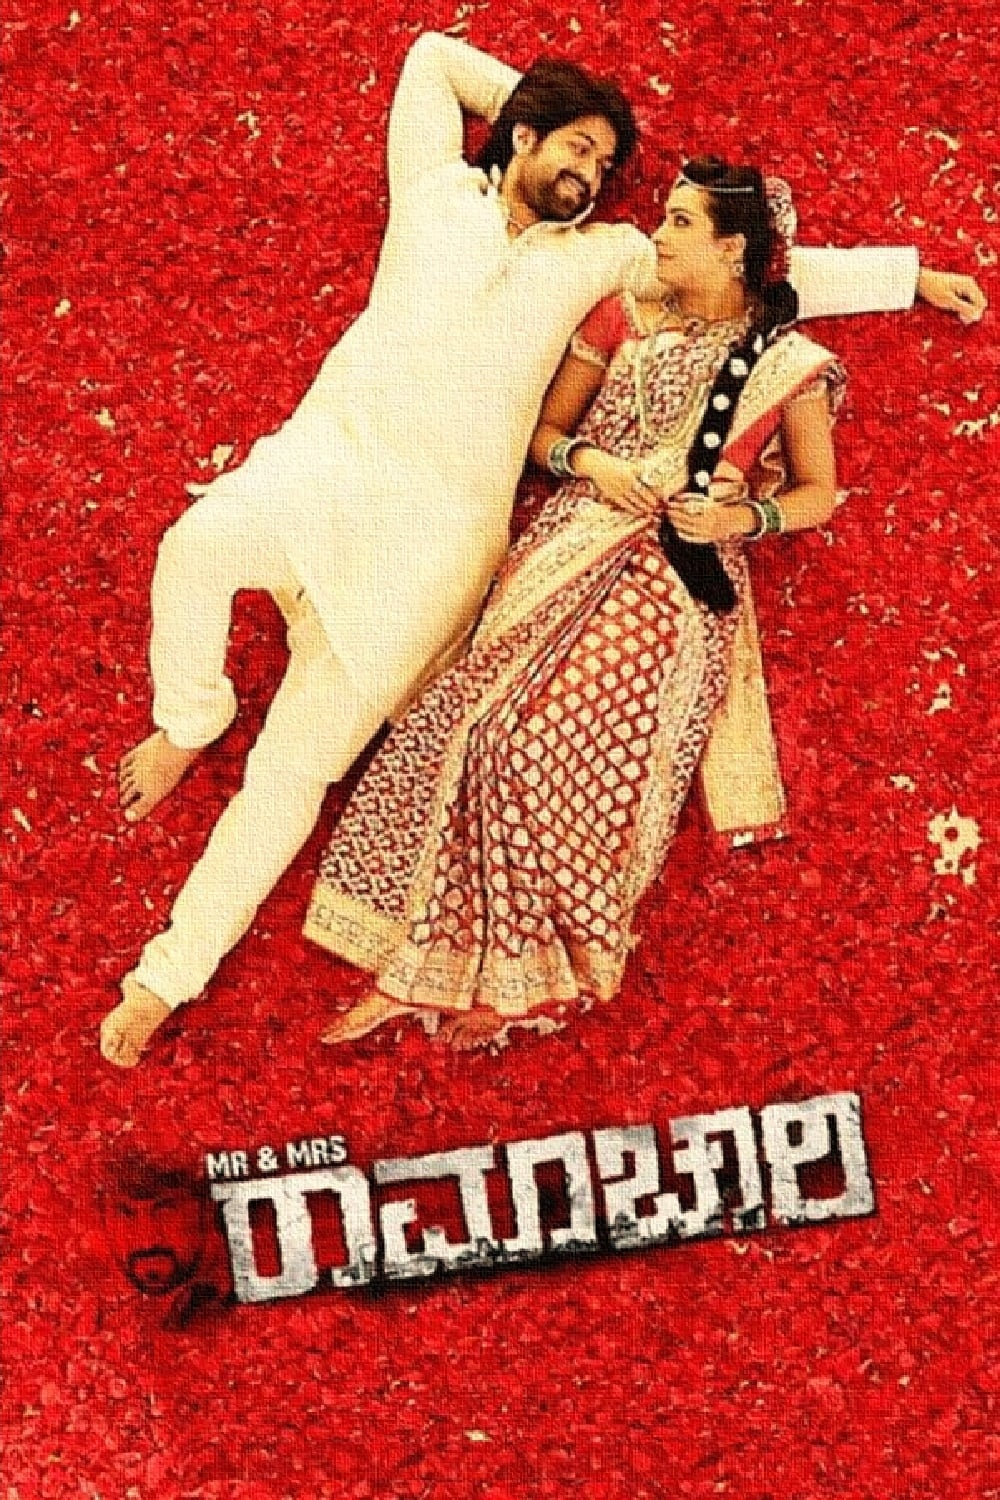 Mr & Mrs Ramachari